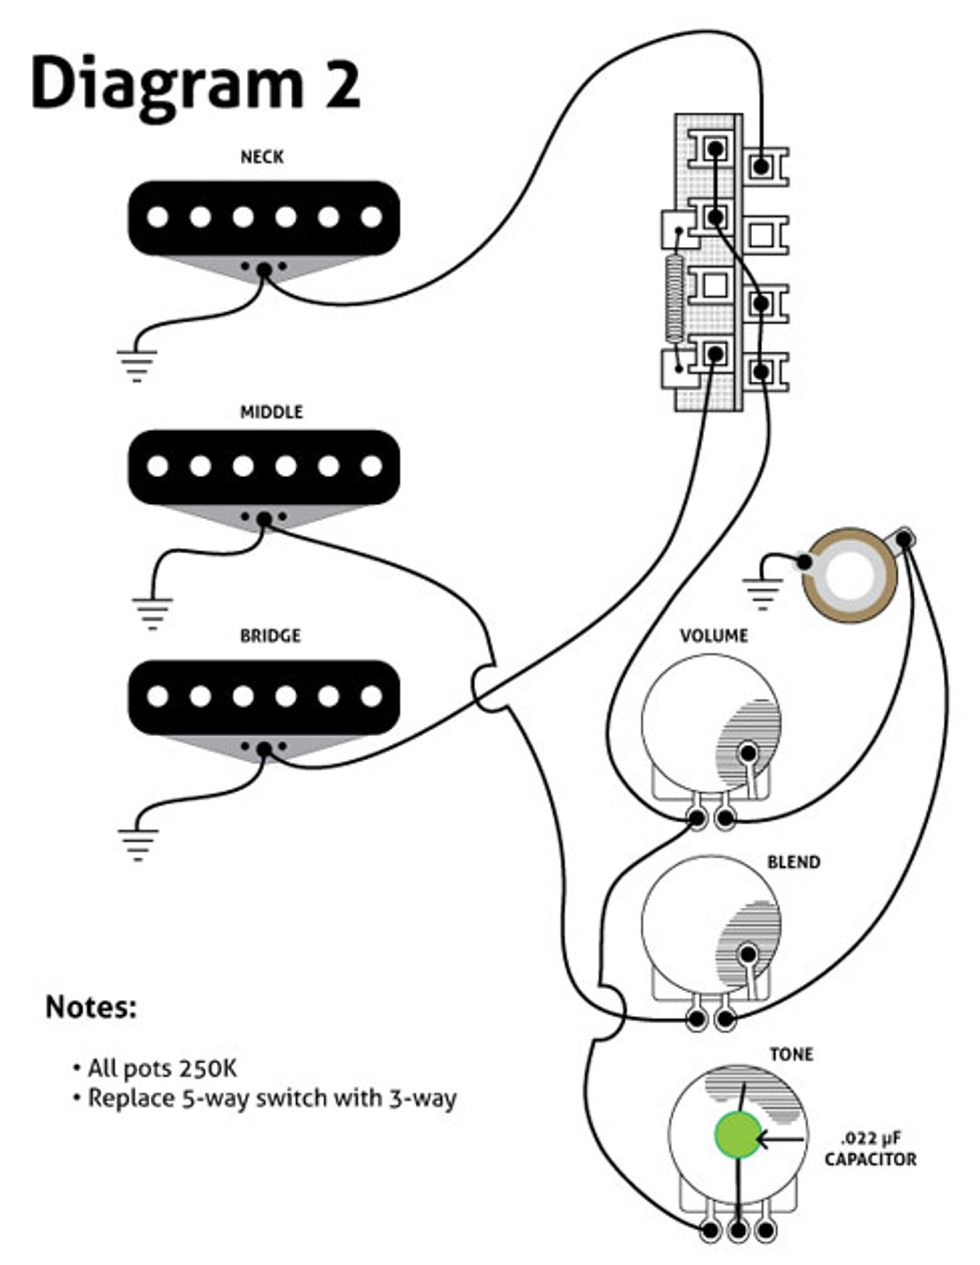 telecaster way switch wiring diagram images telecaster telecaster wiring 5 way switch diagram get image about